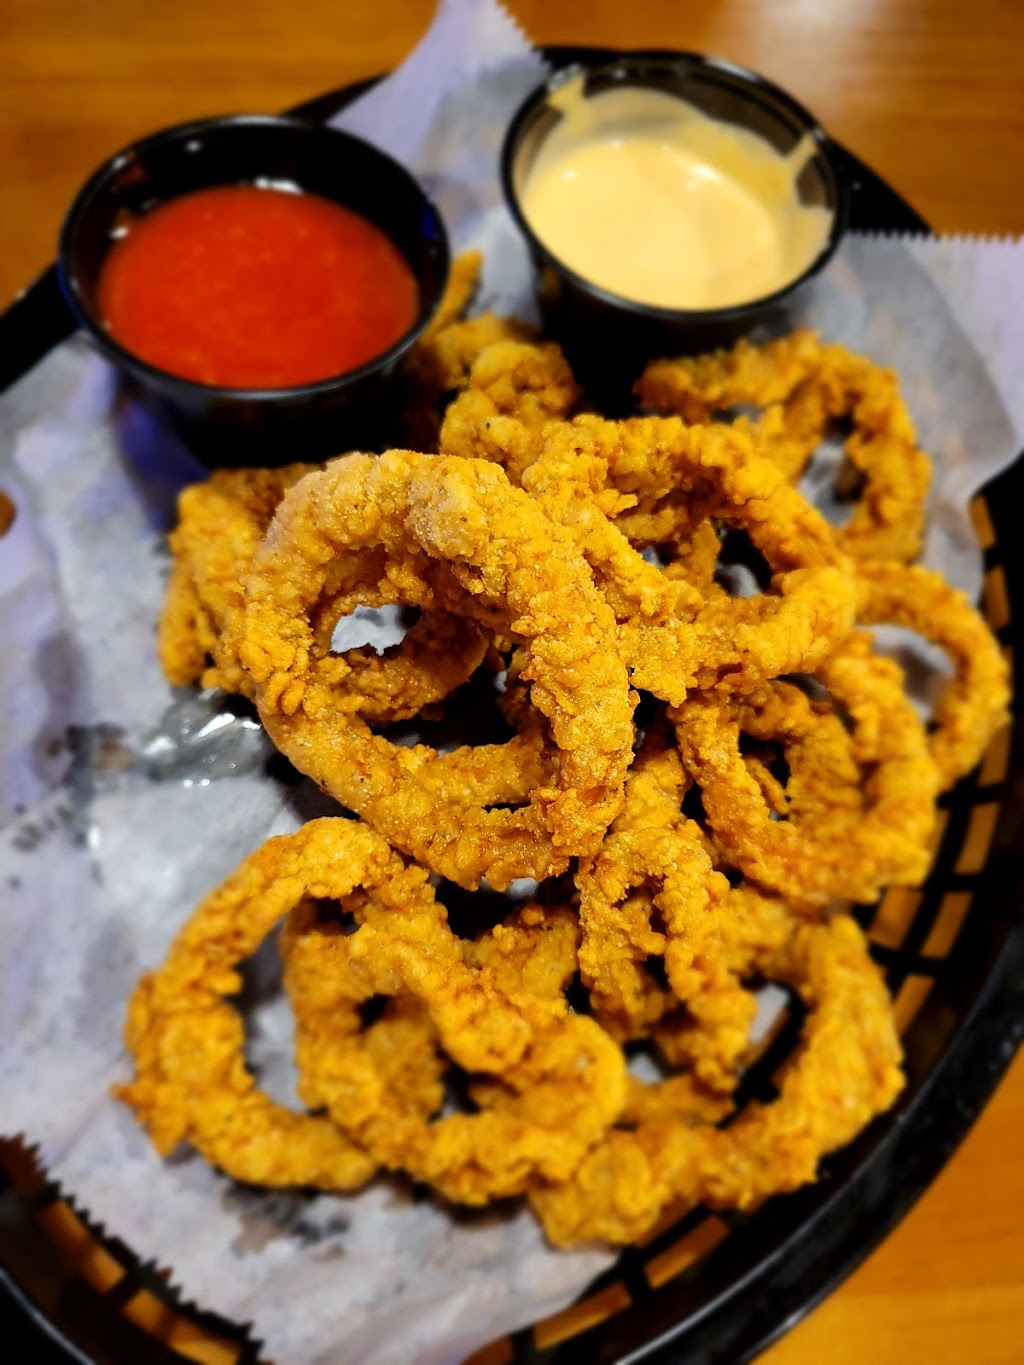 Urban Crab Shack | restaurant | 1991 E Joppa Rd unit 18, Parkville, MD 21234, USA | 4108700115 OR +1 410-870-0115